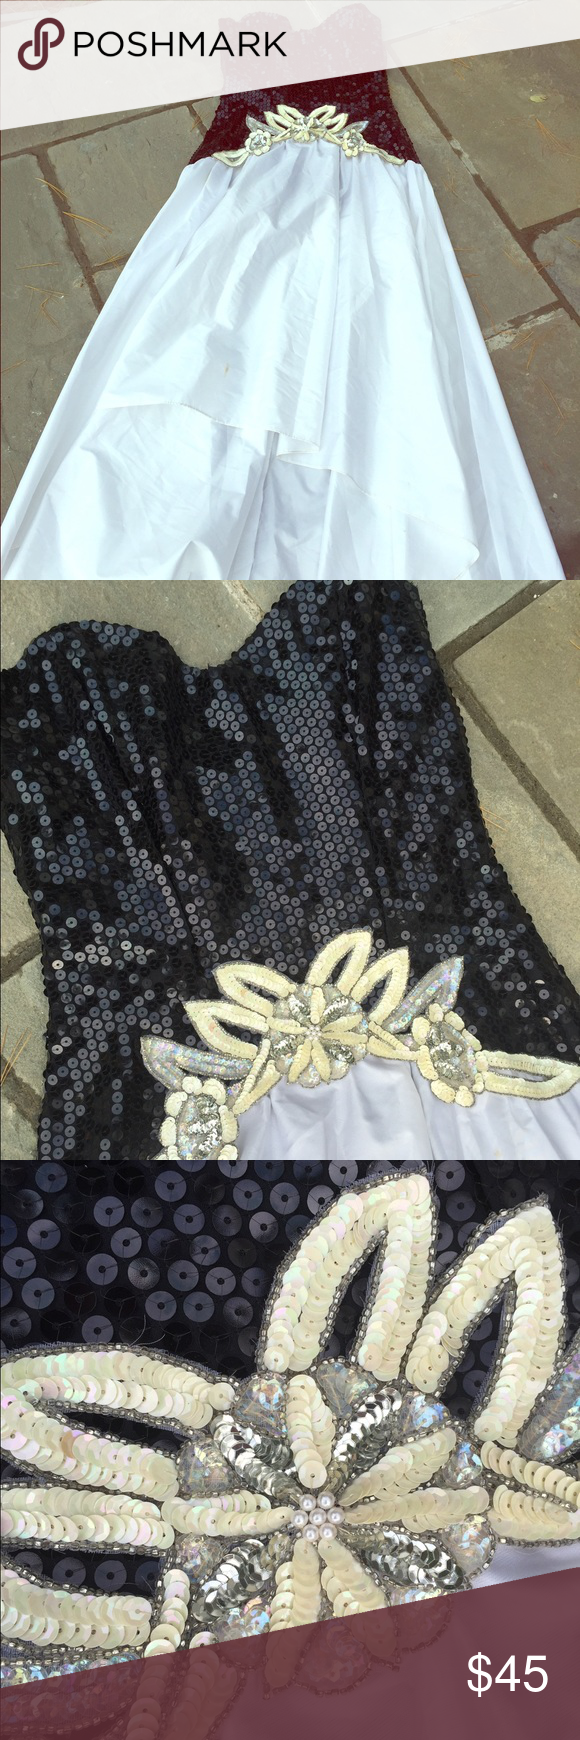 Really awesome s prom dress s prom and dry cleaning